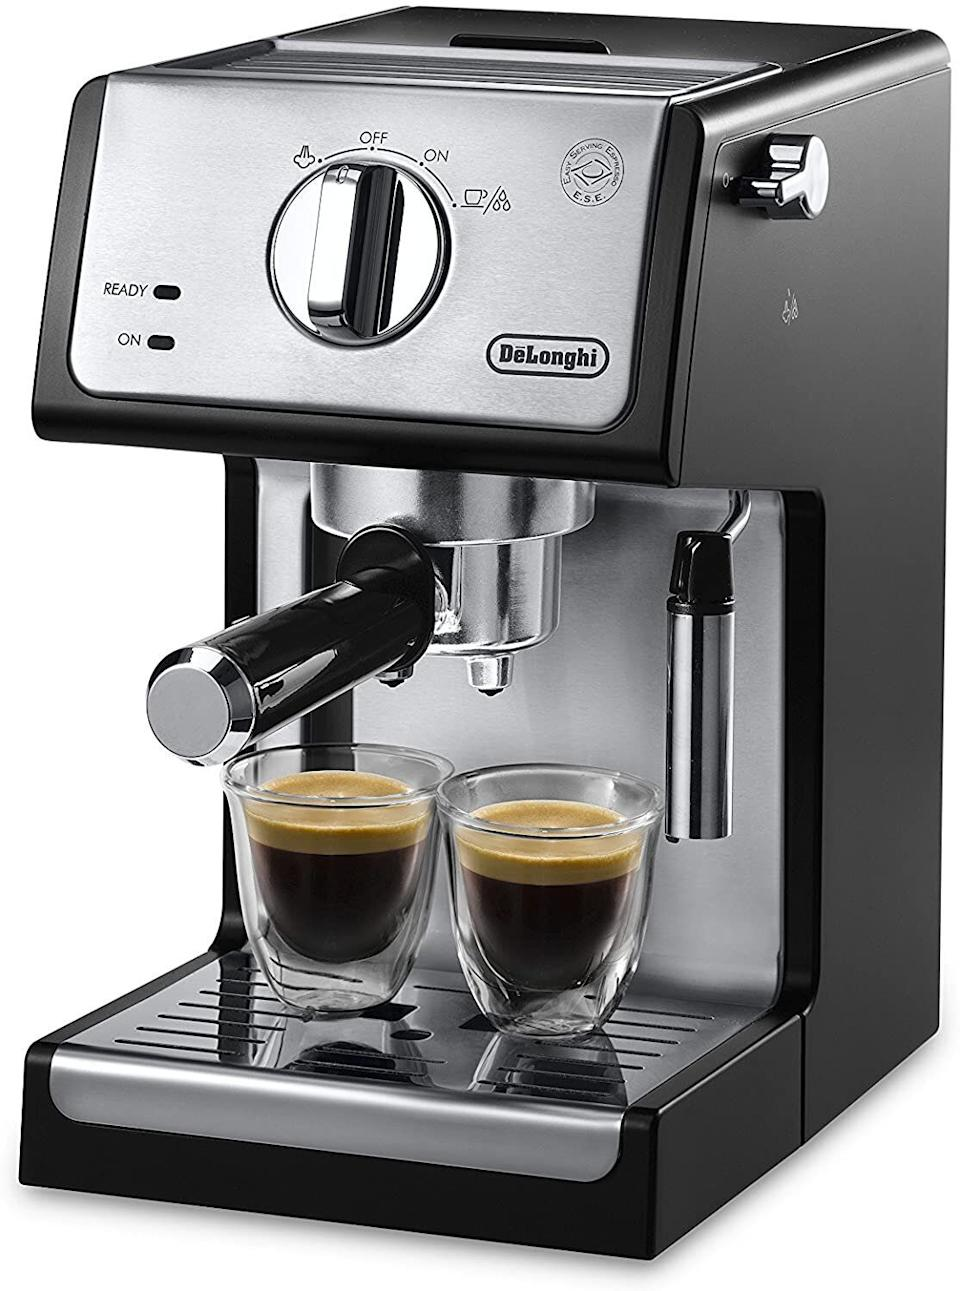 "If you've been missing the cappuccinos from your favorite coffee shop, Prime Day saw <a href=""https://www.huffpost.com/entry/best-prime-day-deals-espresso-machines-2020_l_5f7613a7c5b66377b27ee7f1"" target=""_blank"" rel=""noopener noreferrer"">markdowns on coffee machines</a> from Breville, Nespresso and more. This espresso machine from De'Longhi is still on sale. It has a stainless steel boiler system. <a href=""https://amzn.to/3o8TmHQ"" target=""_blank"" rel=""noopener noreferrer"">Find it on sale for $123 at Amazon</a>."